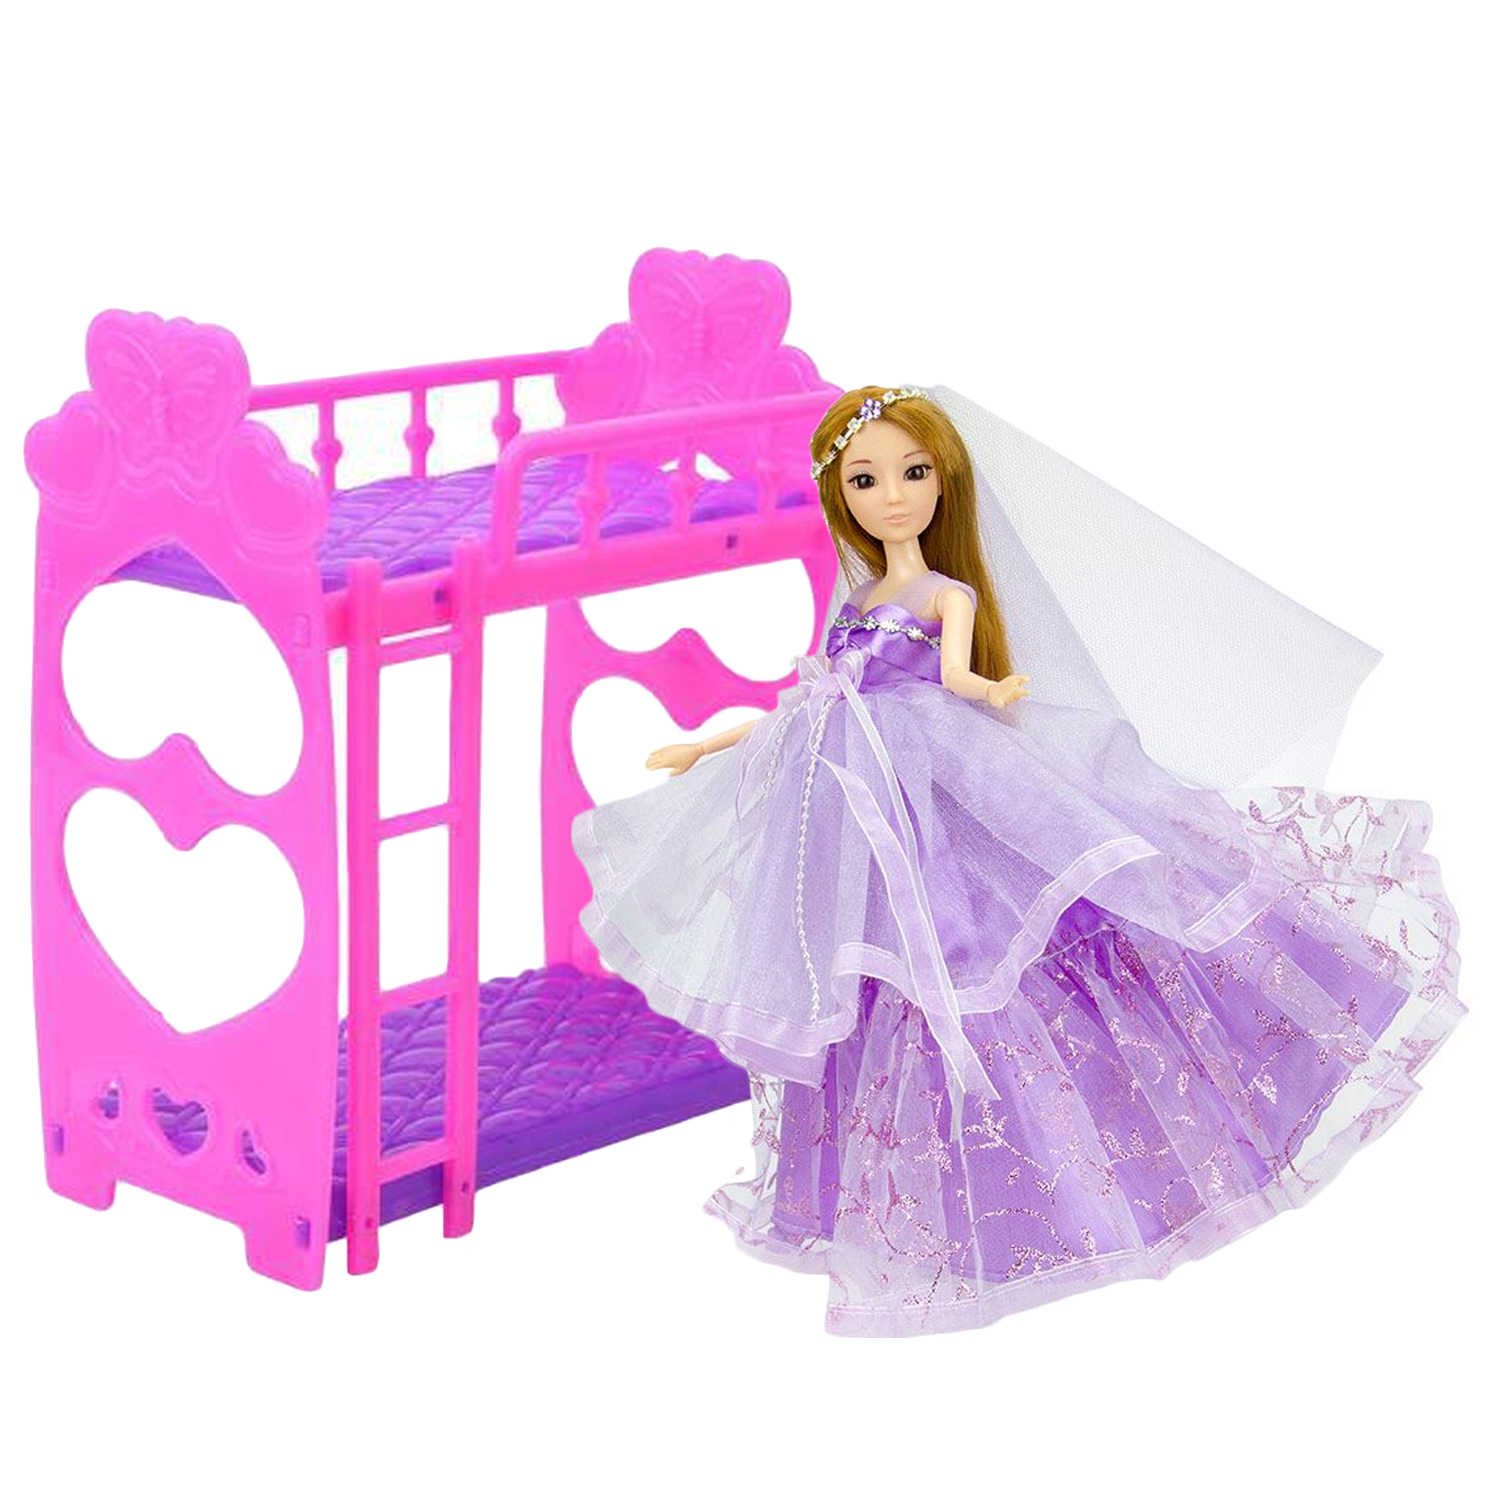 Picture of: Kids Cute Doll Bunk Bed Detachable Bed Frame Bedroom Dollhouse Double Bed Dolls Pink Furniture Accessories For Barbie Toy Aliexpress